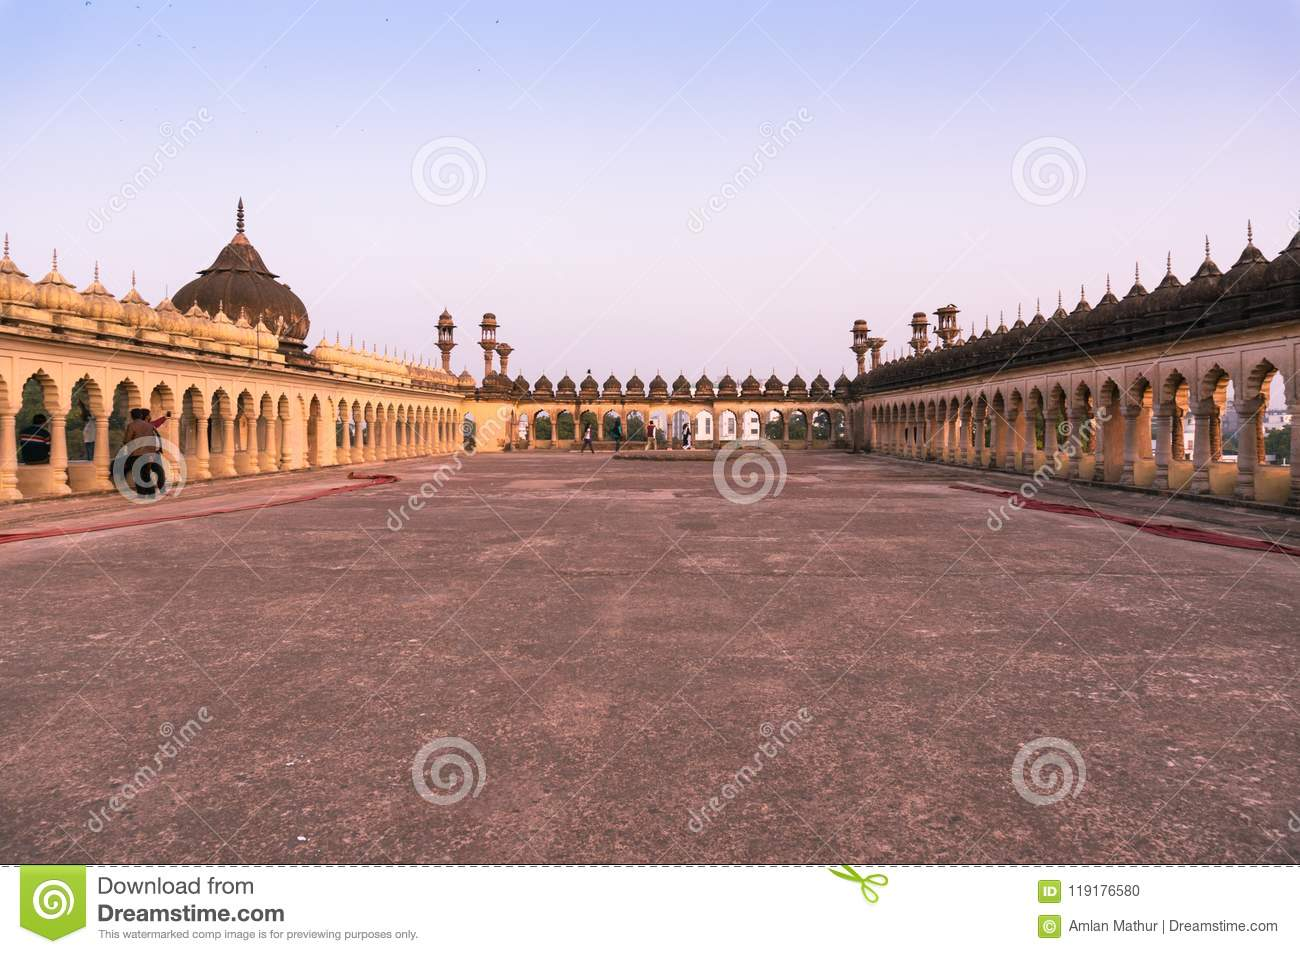 Roof of the bara imambara complex in lucknow